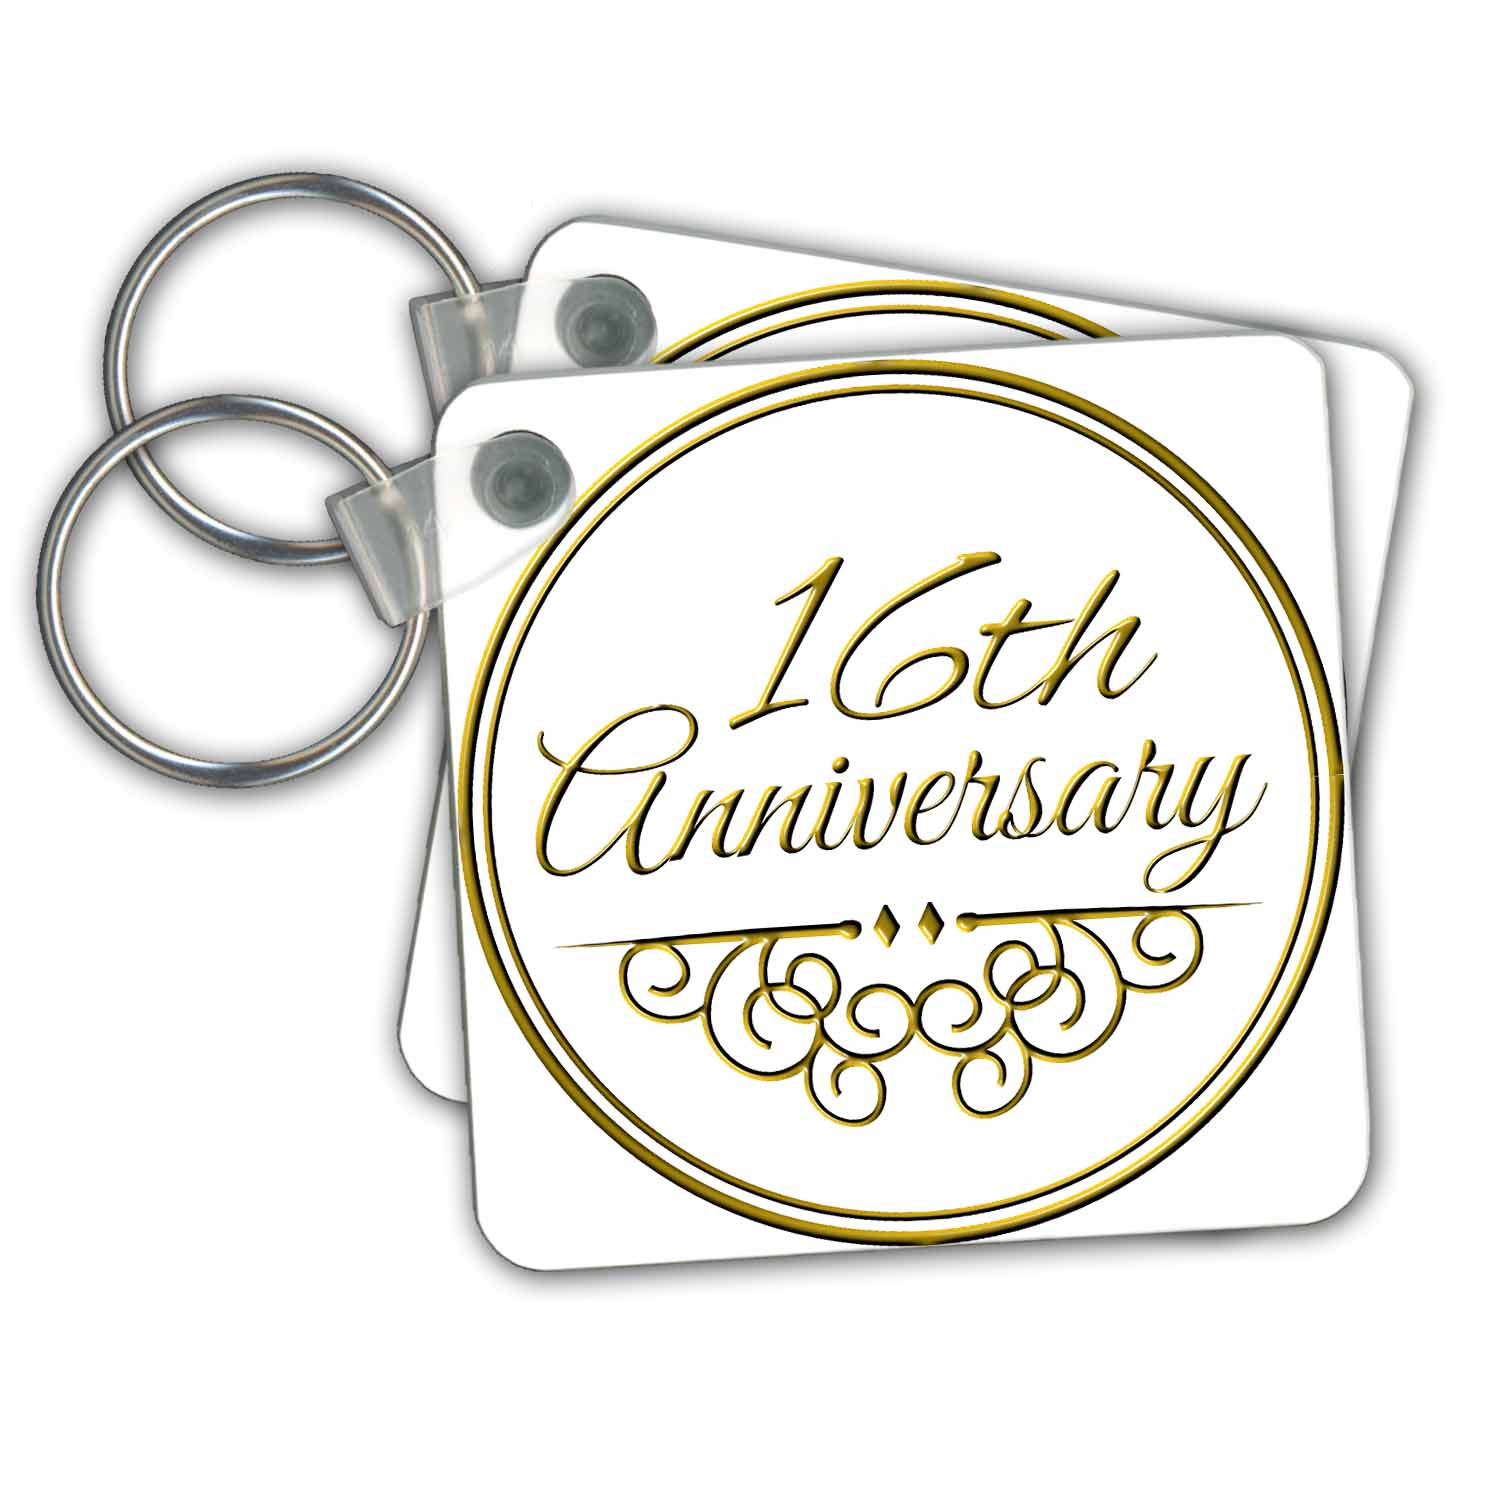 3drose 3drose 16th Anniversary Gift Gold Text For Celebrating Wedding Anniversaries 16 Years Married Together Key Chains 2 25 By 2 25 Inch Set Of 2 Walmart Com Walmart Com